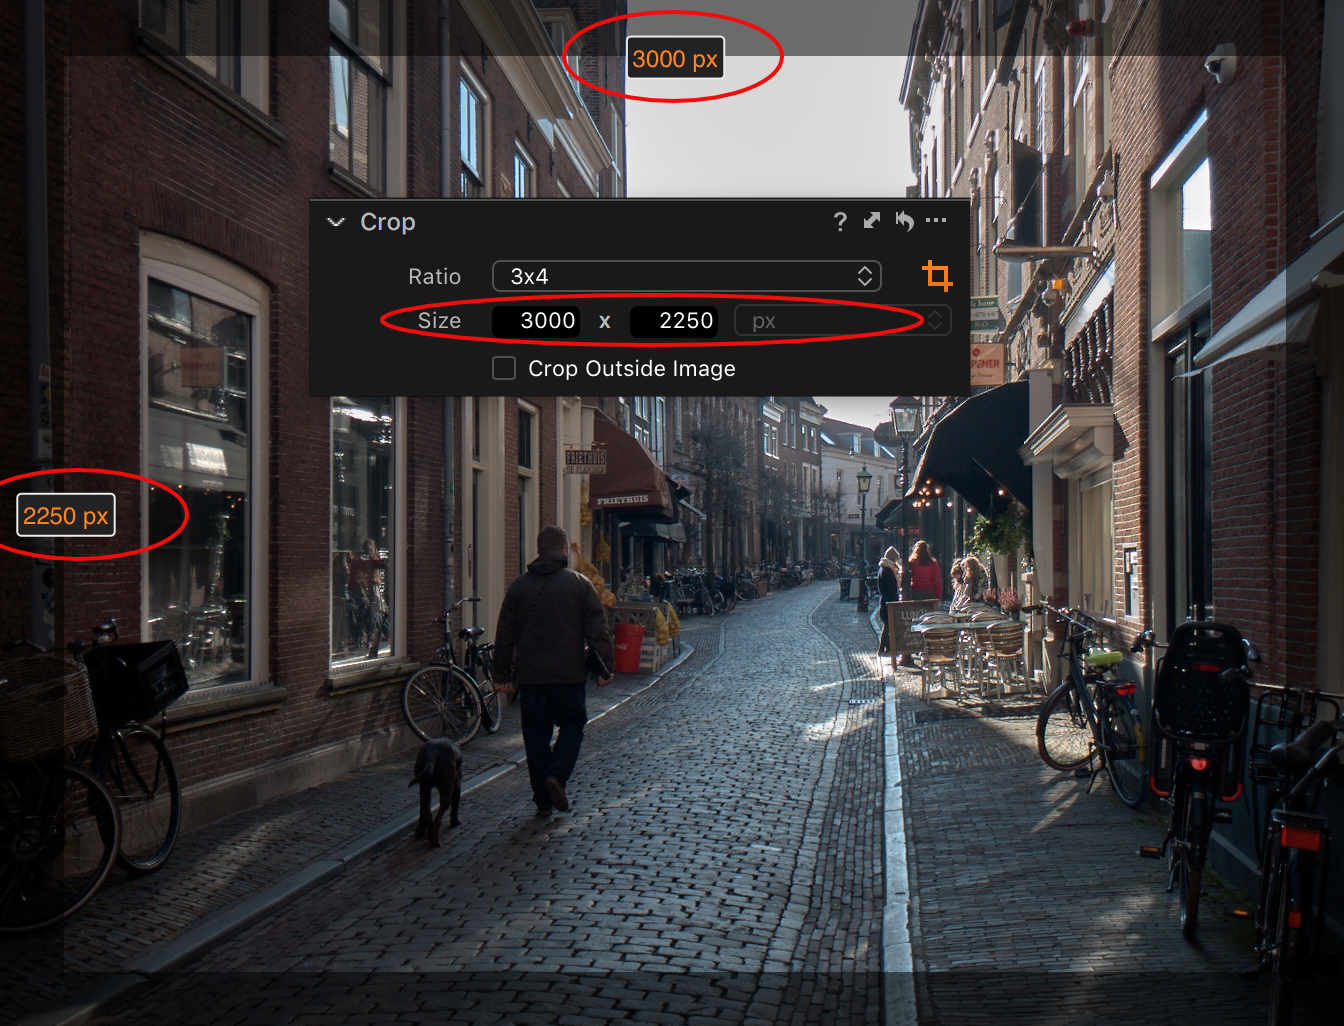 capture one composition tools, crop tool, units